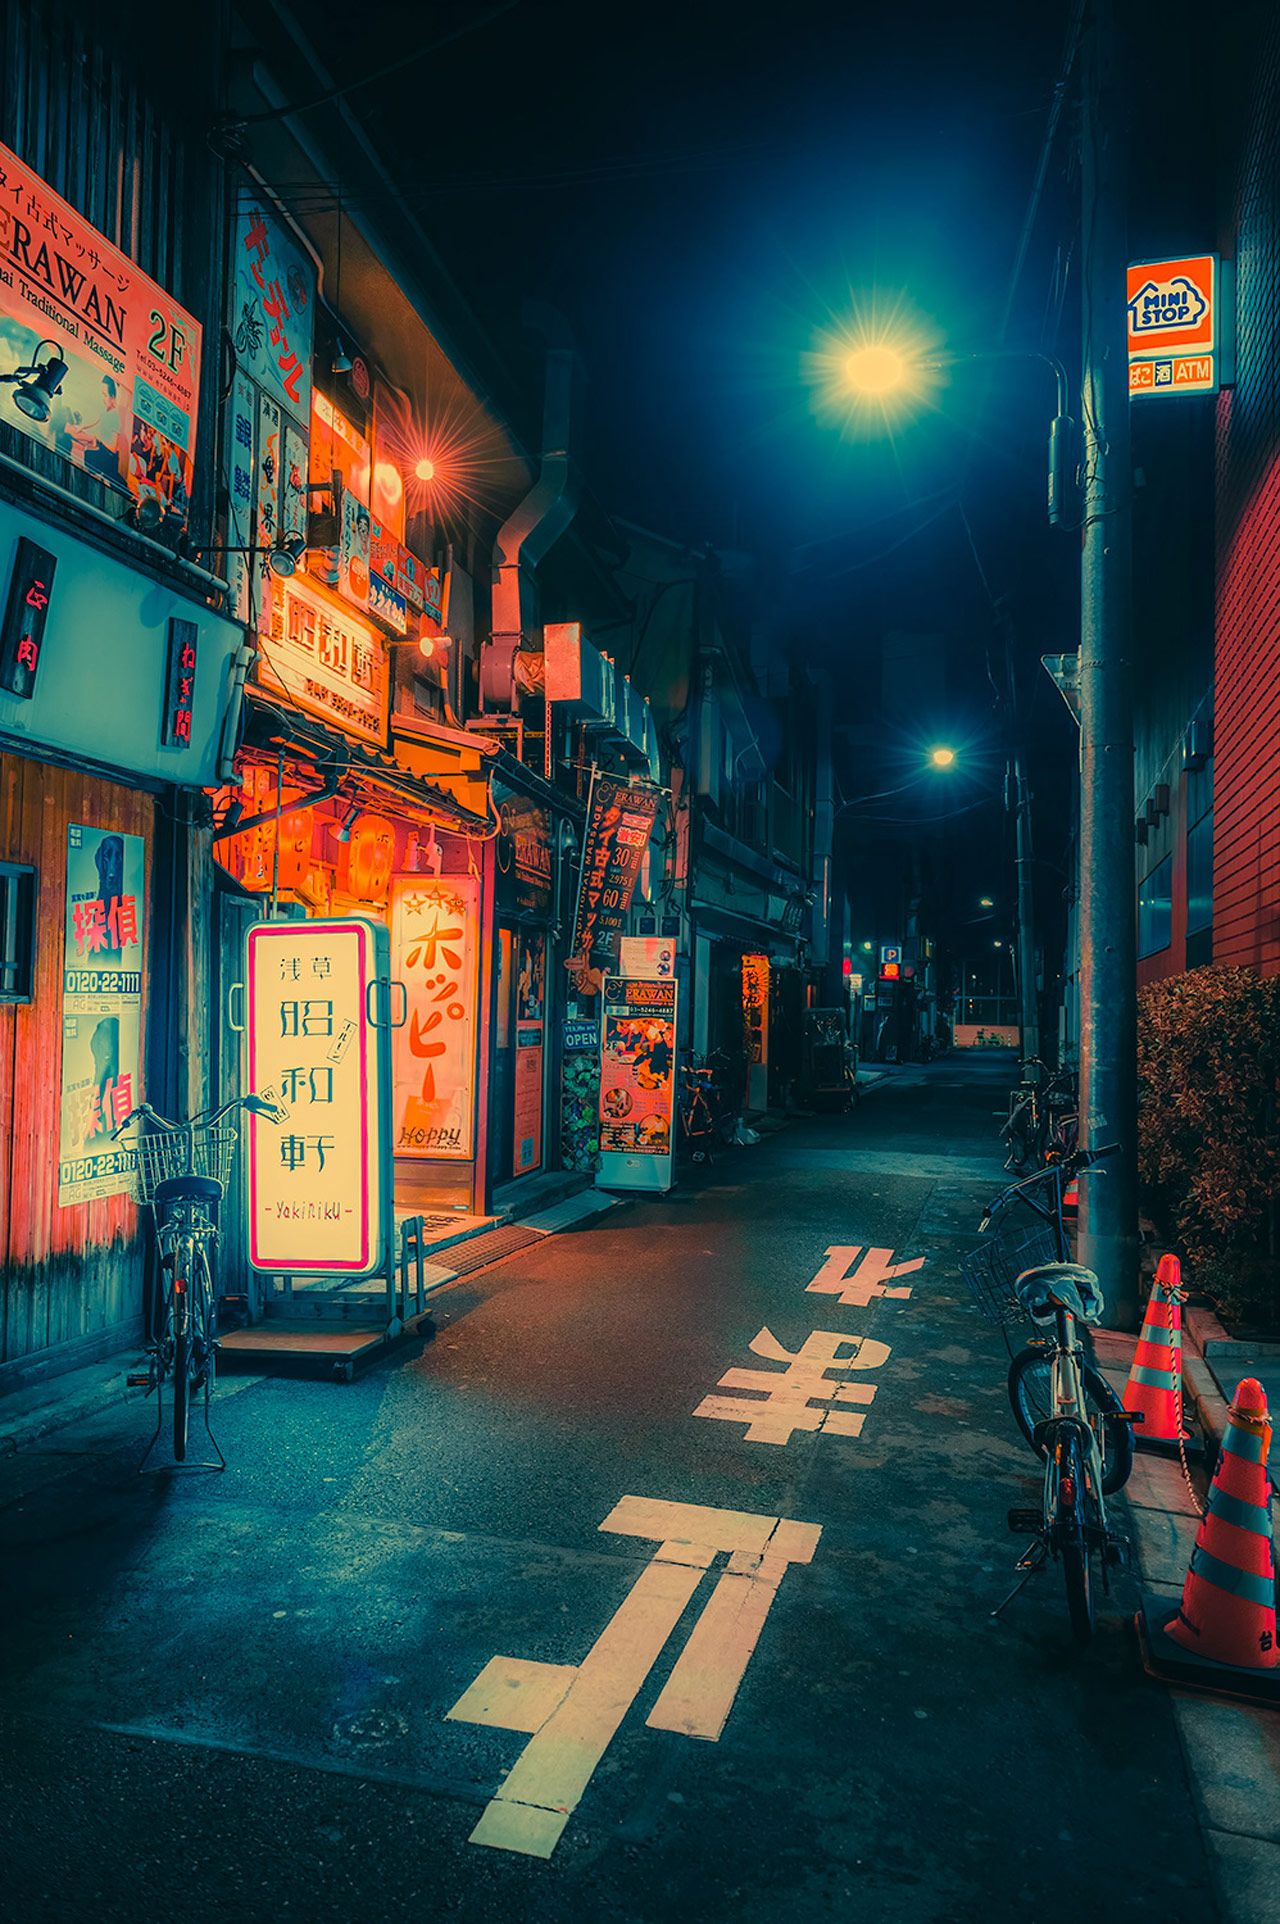 Dream World Neon Colored Japan Captured By Photographer Anthony Presley In 2021 Anime Scenery Wallpaper Night Photography Scenery Wallpaper